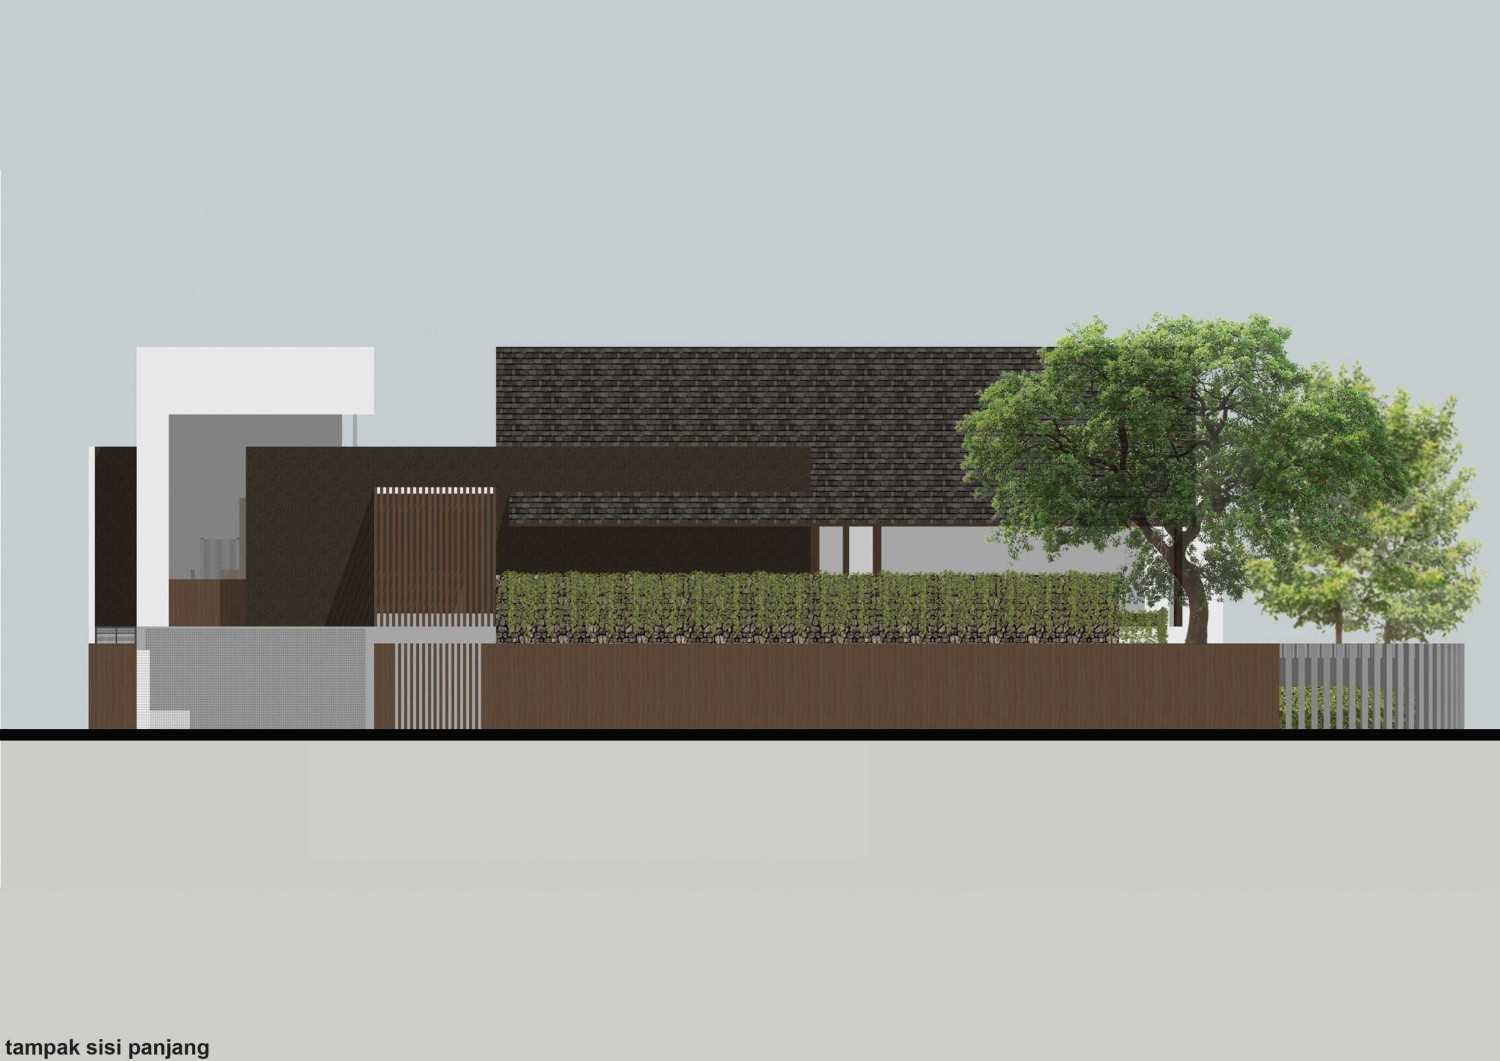 Monokroma Architect Puri Indah House Jakarta Jakarta 18-Draft-2-South-Elevation  15144